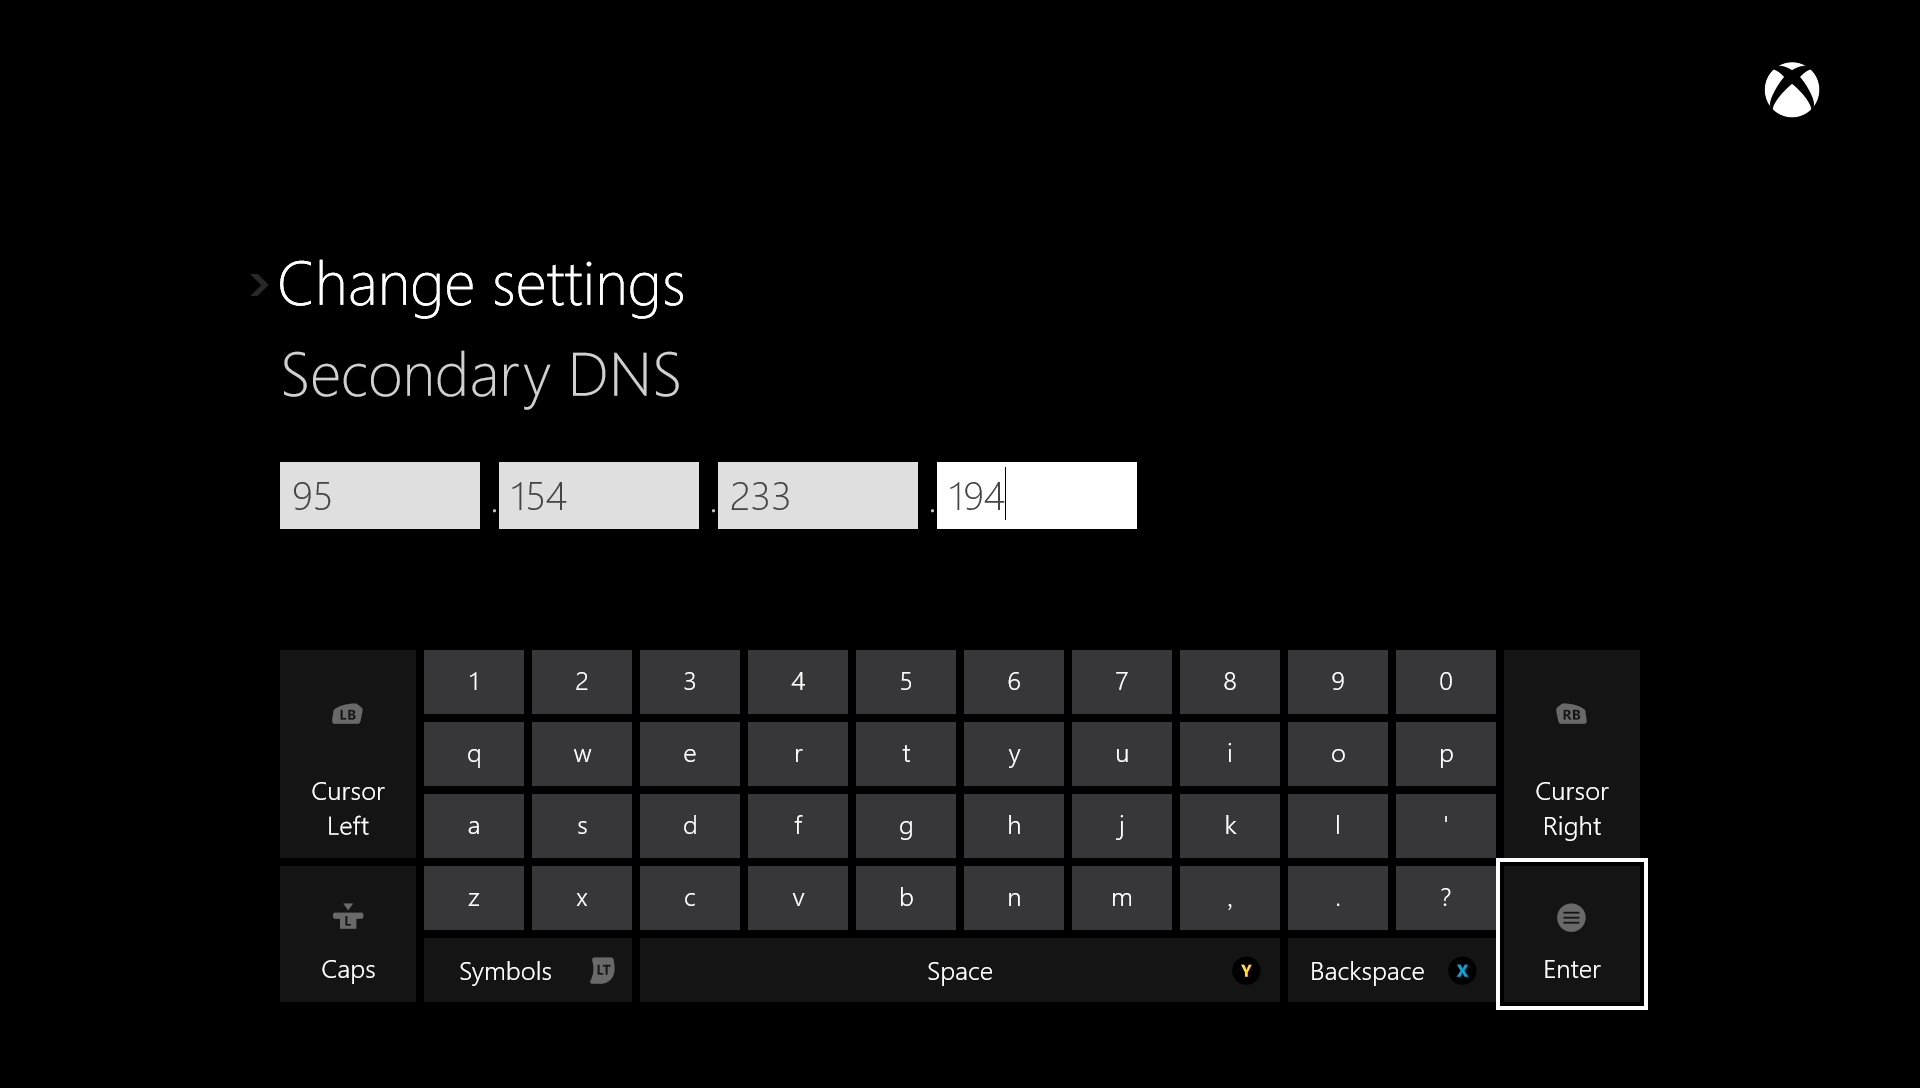 Microsoft Xbox One Secondary DNS Settings